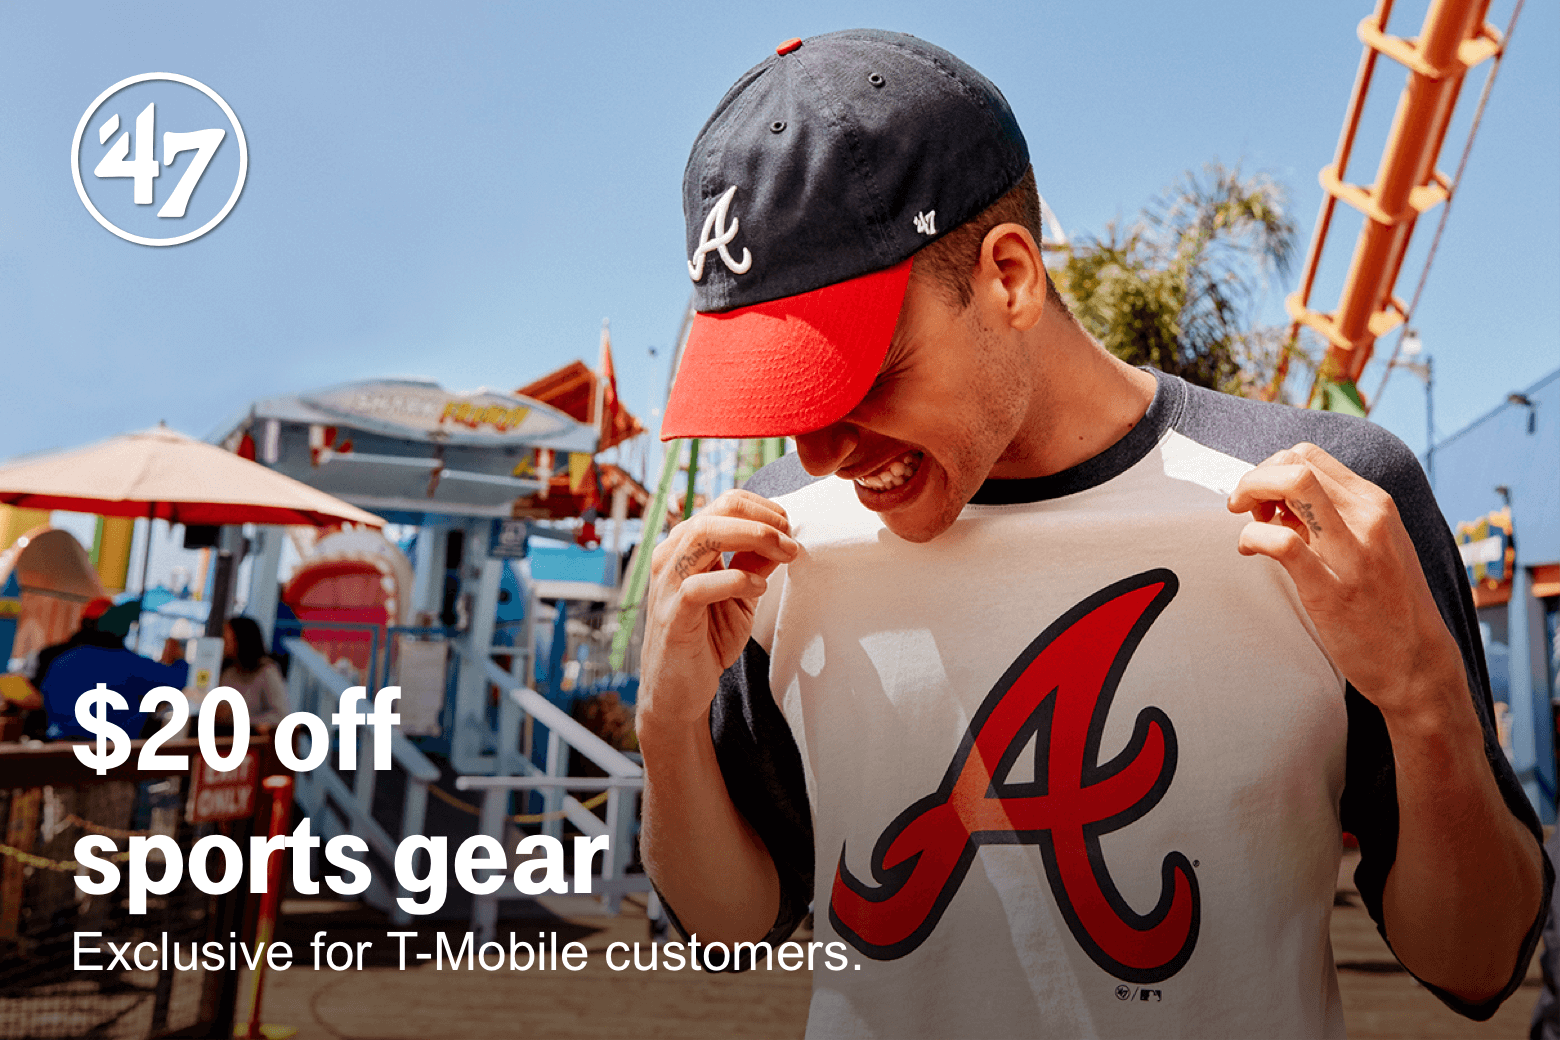 47Brand. $20 off sports gear. Exclusive for T-Mobile customers.